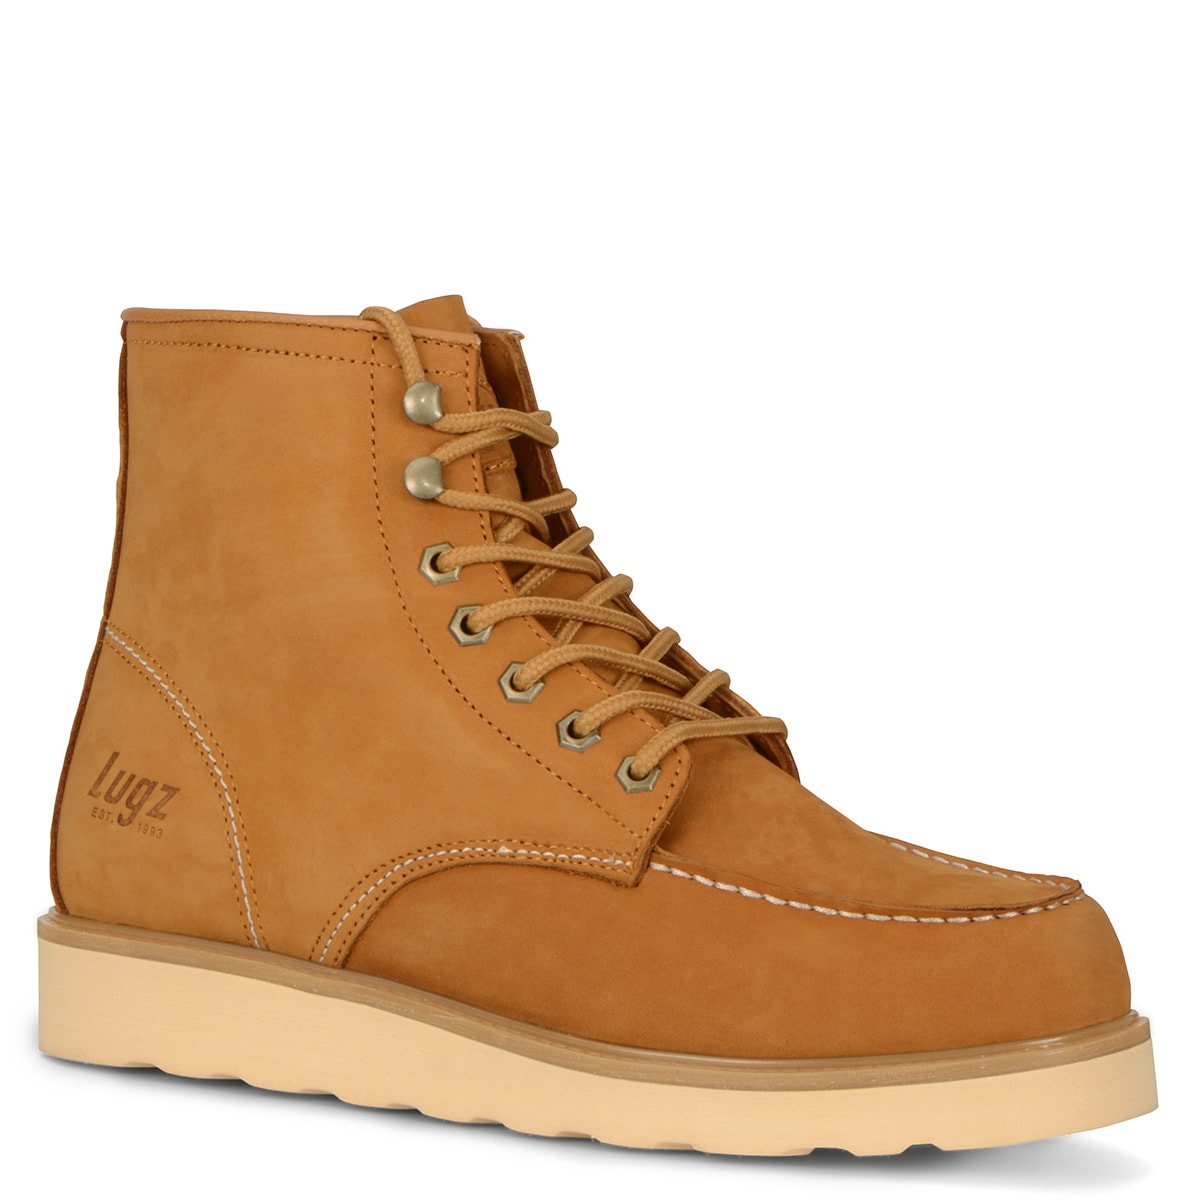 Men's Prospect 6 Inch Boot (Choose Your Color: Golden Wheat/Cream/Gum, Choose Your Size: 13.0)